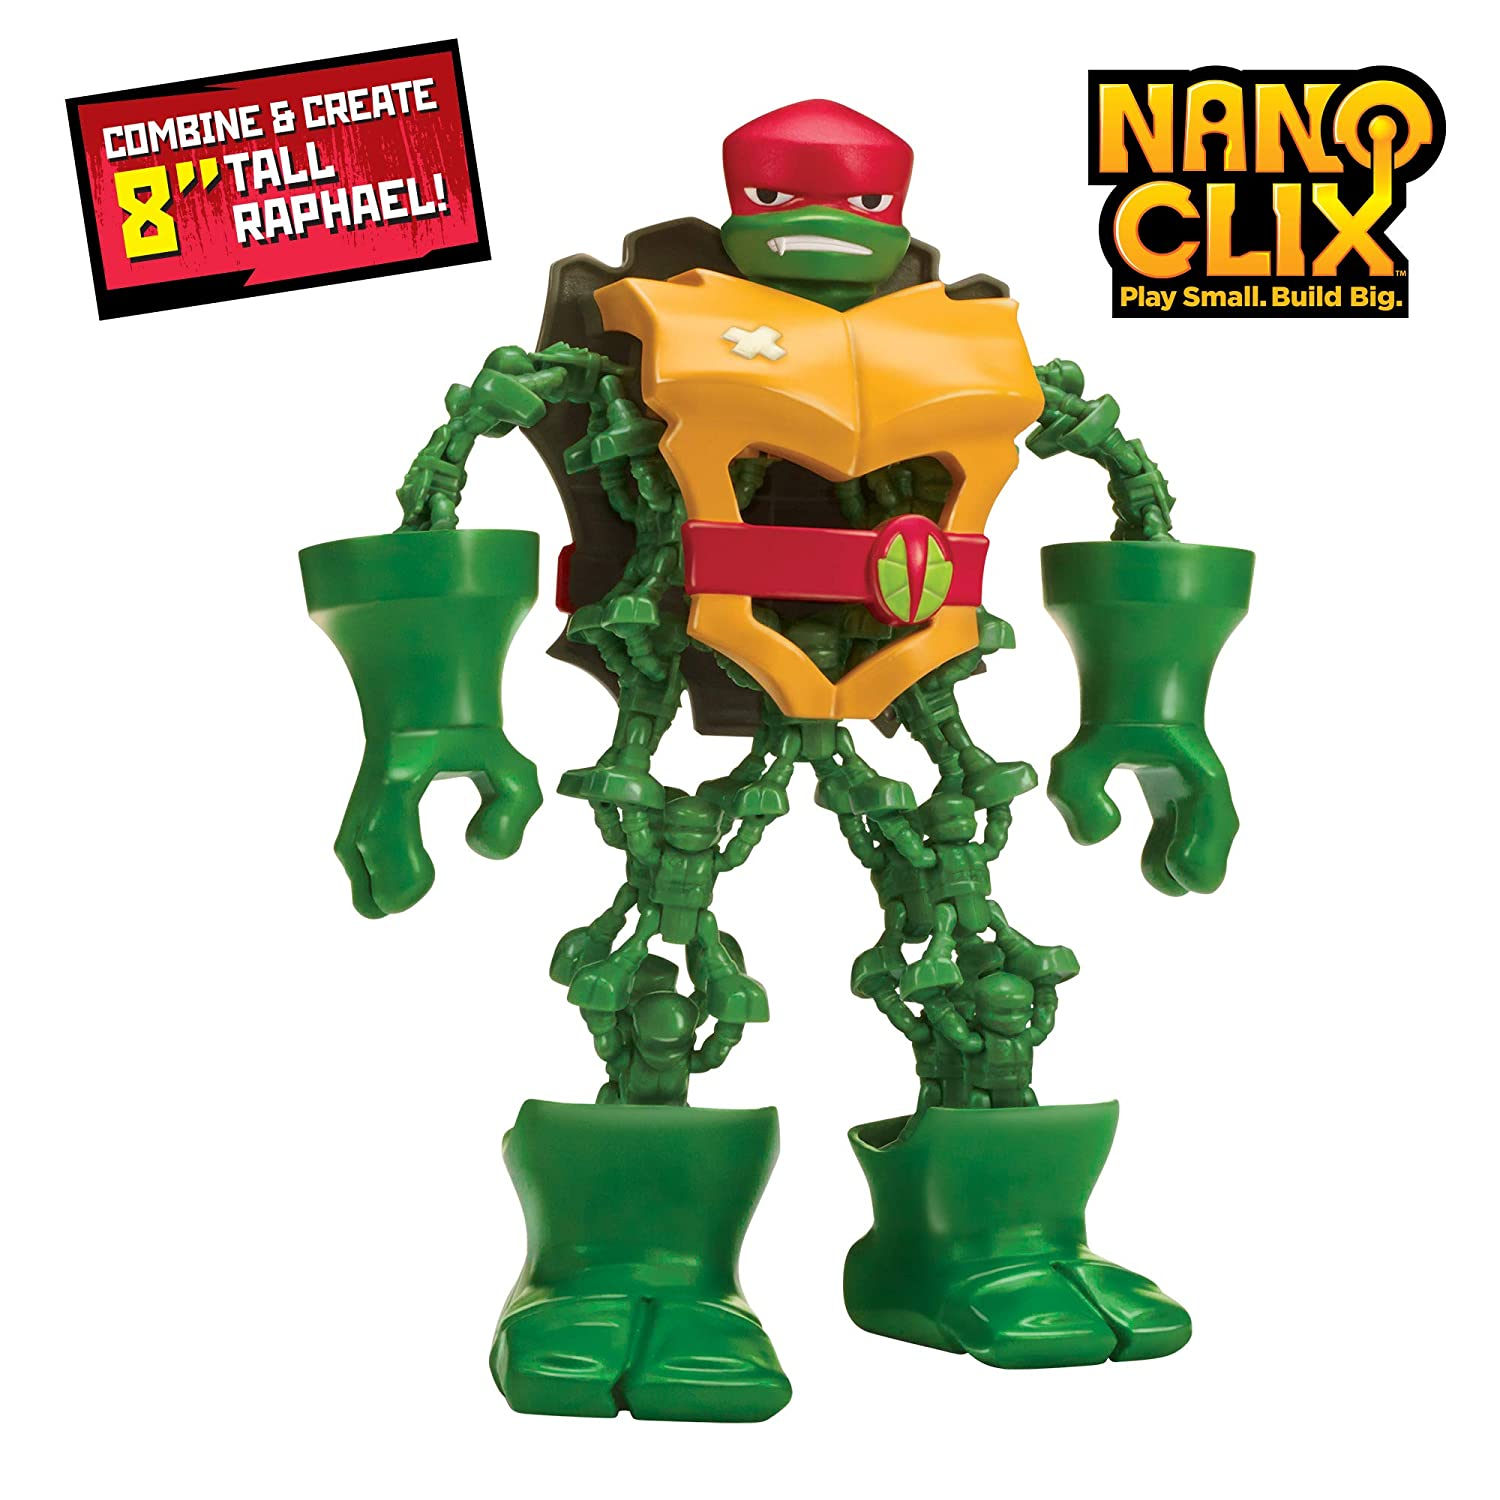 Rise of the Teenage Mutant Ninja Turtles Nano Clix Raphael Figure